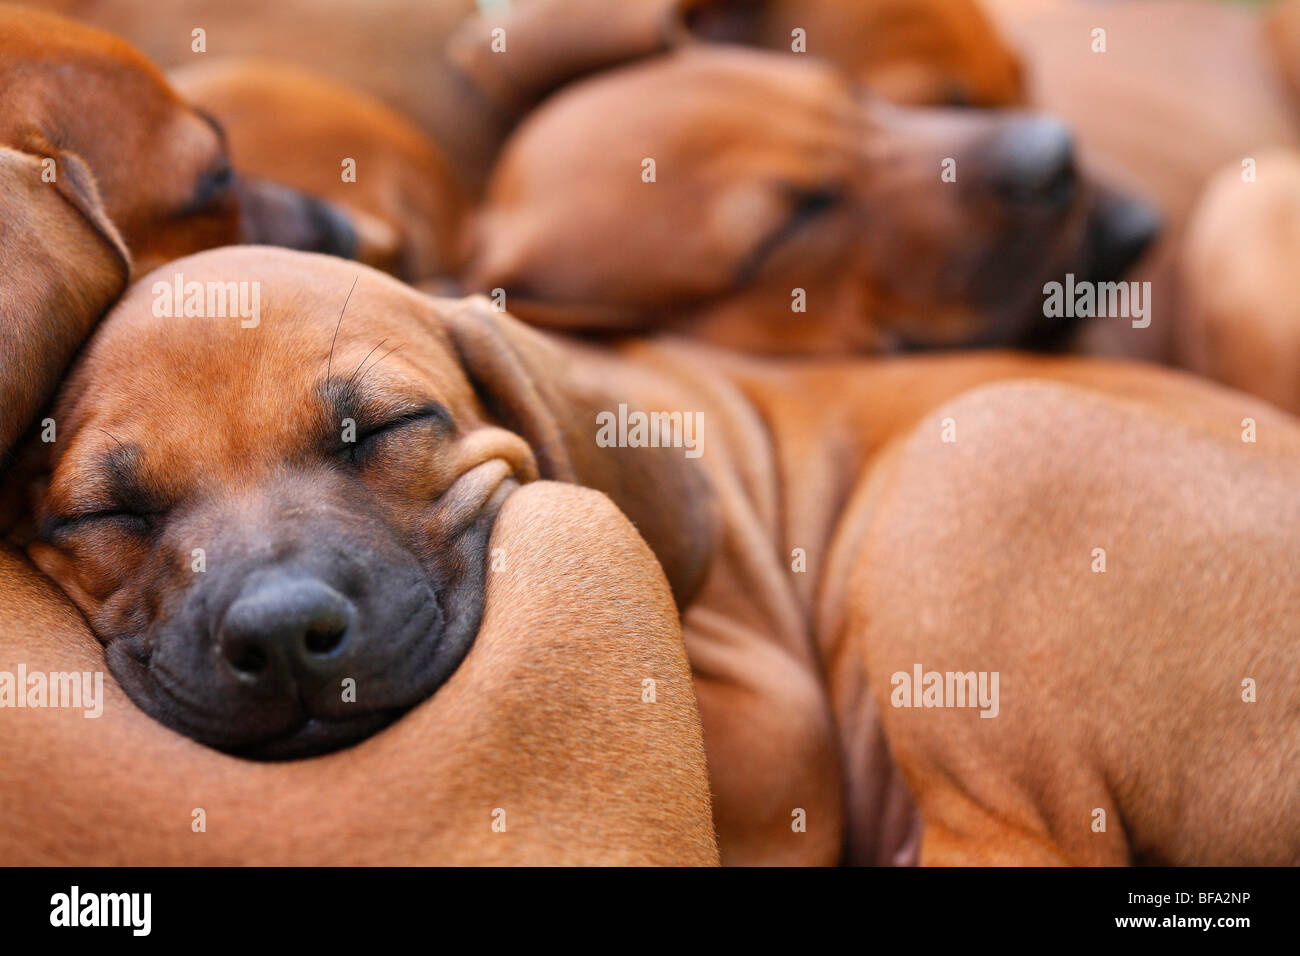 Rhodesian Ridgeback (Canis lupus f. familiaris), several eight weeks old puppies sleeping cuddled together Stock Photo